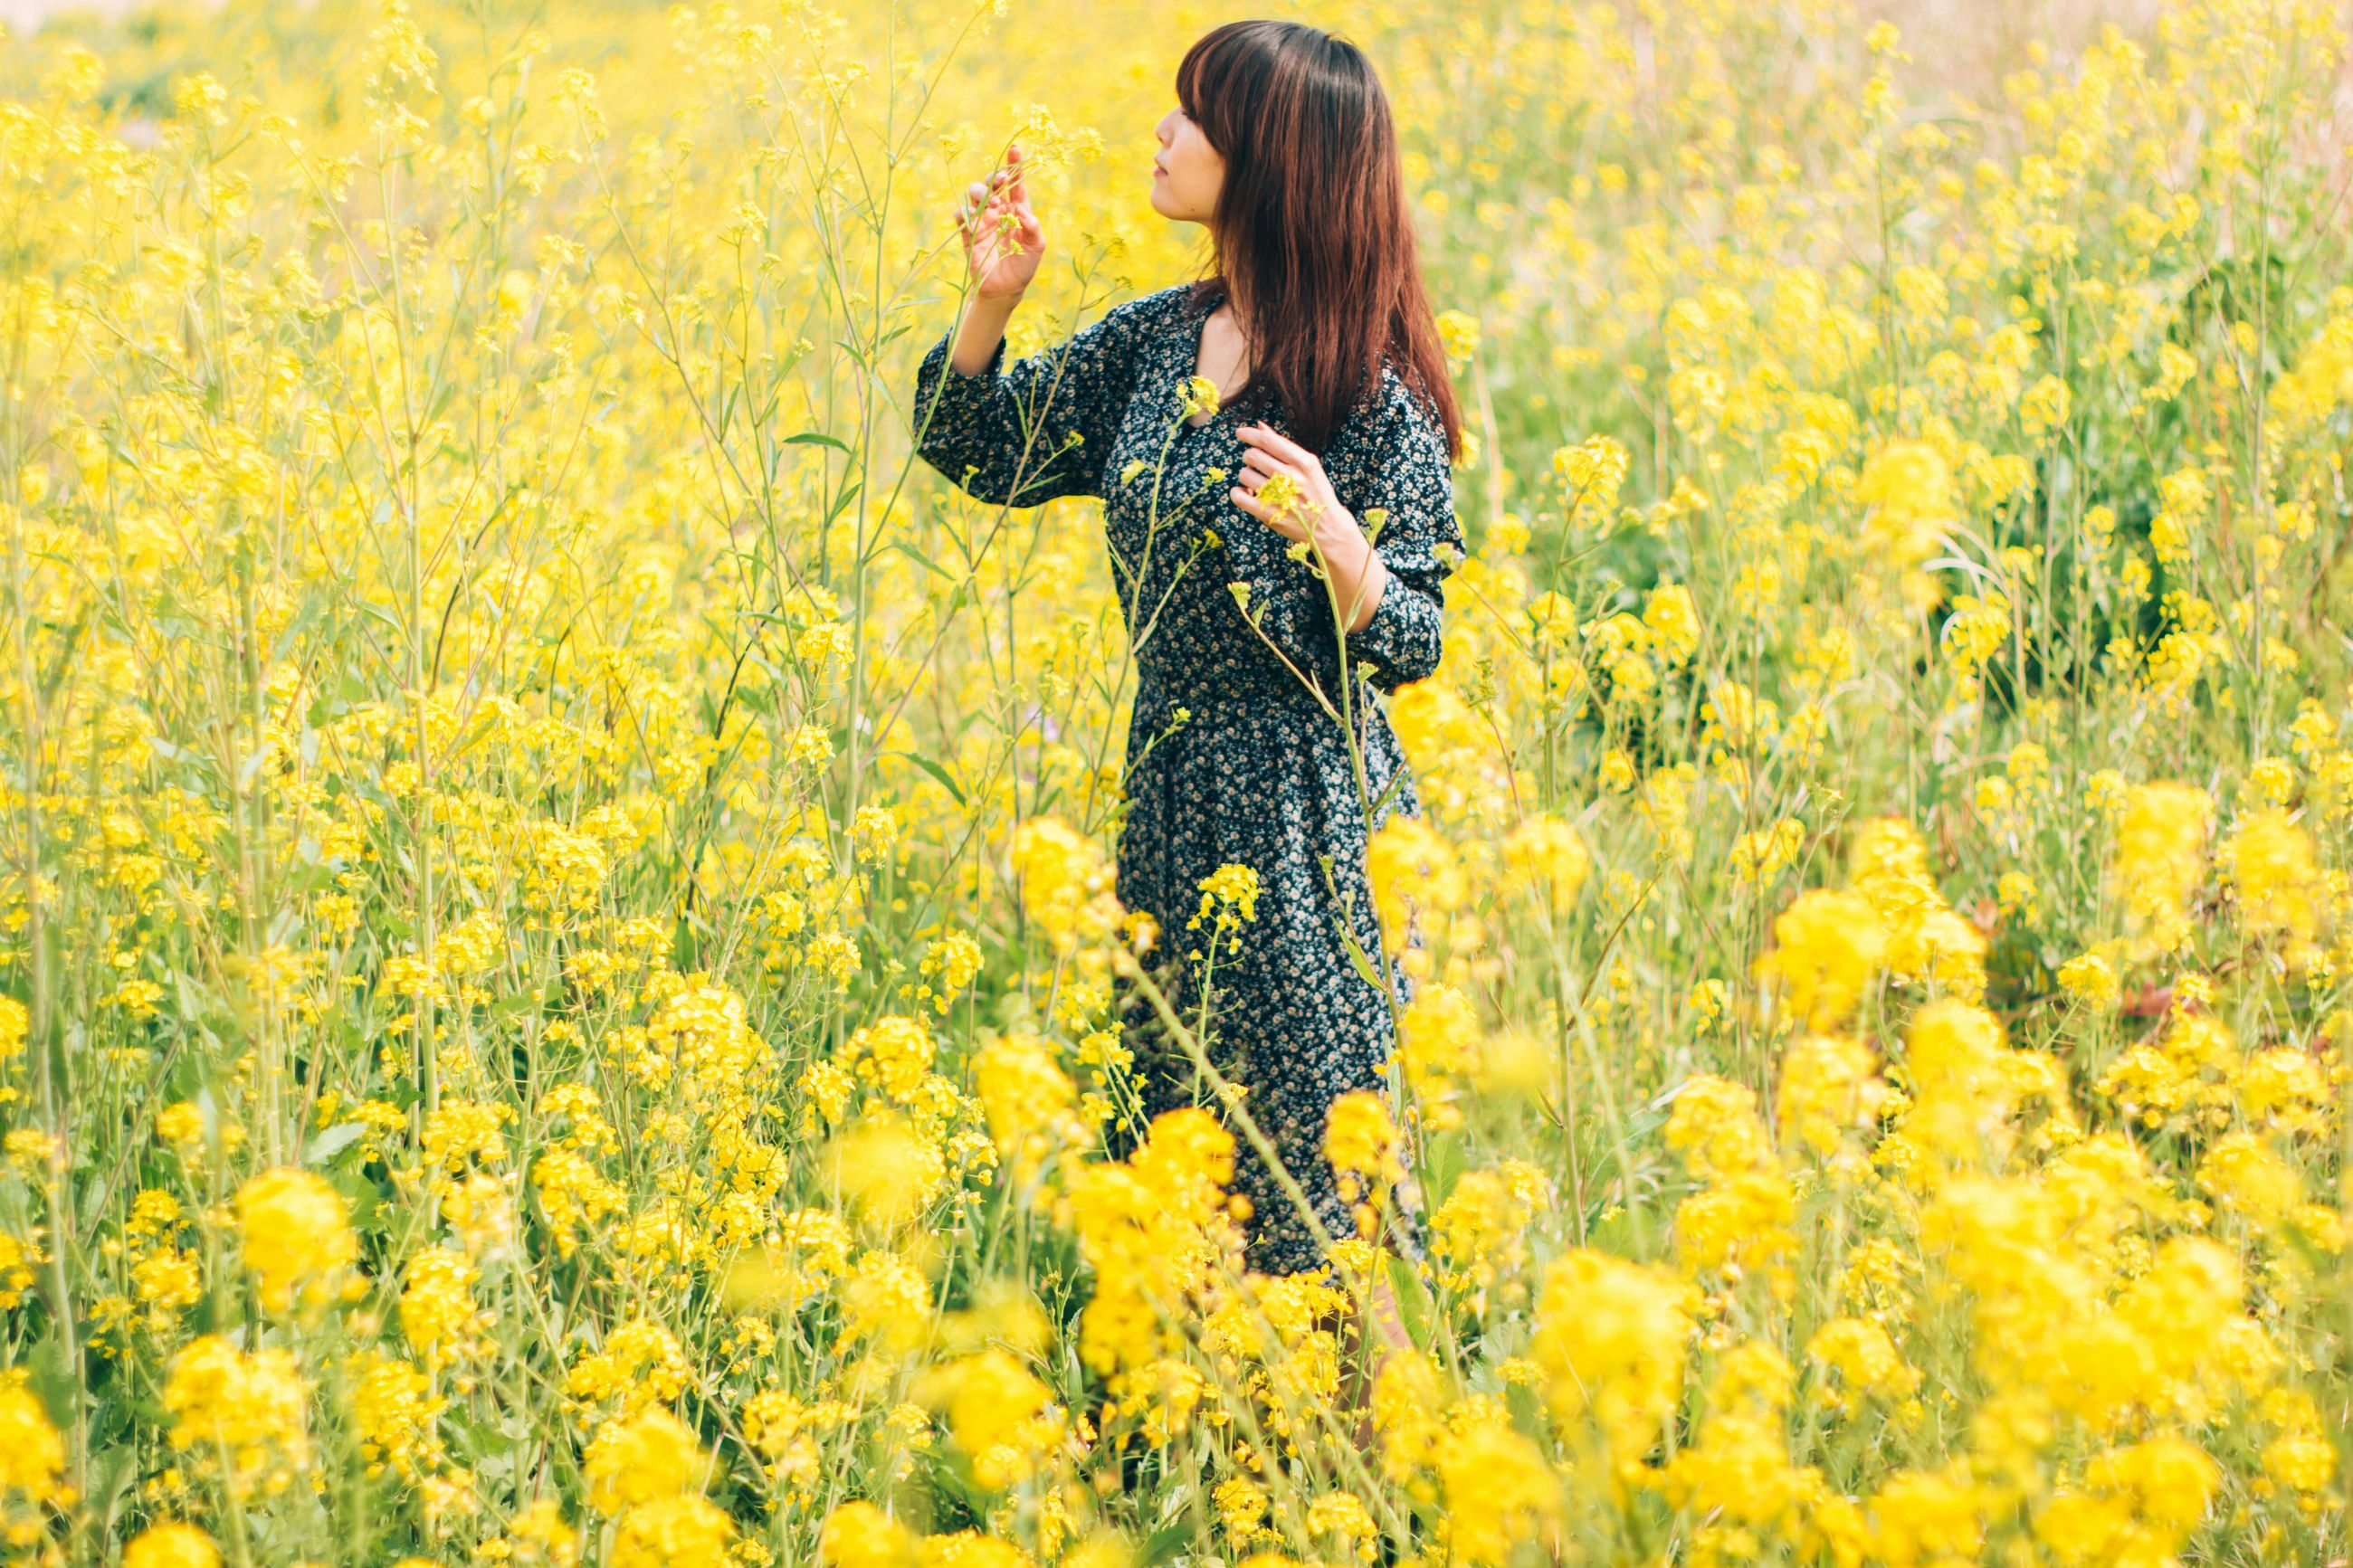 beauty, flower, beauty in nature, nature, happiness, yellow, females, beautiful people, carefree, harmony, rear view, field, day dreaming, young adult, idyllic, freedom, rural scene, tranquil scene, springtime, smiling, summer, outdoors, women, cheerful, beautiful woman, one person, adult, agriculture, people, freshness, human body part, day